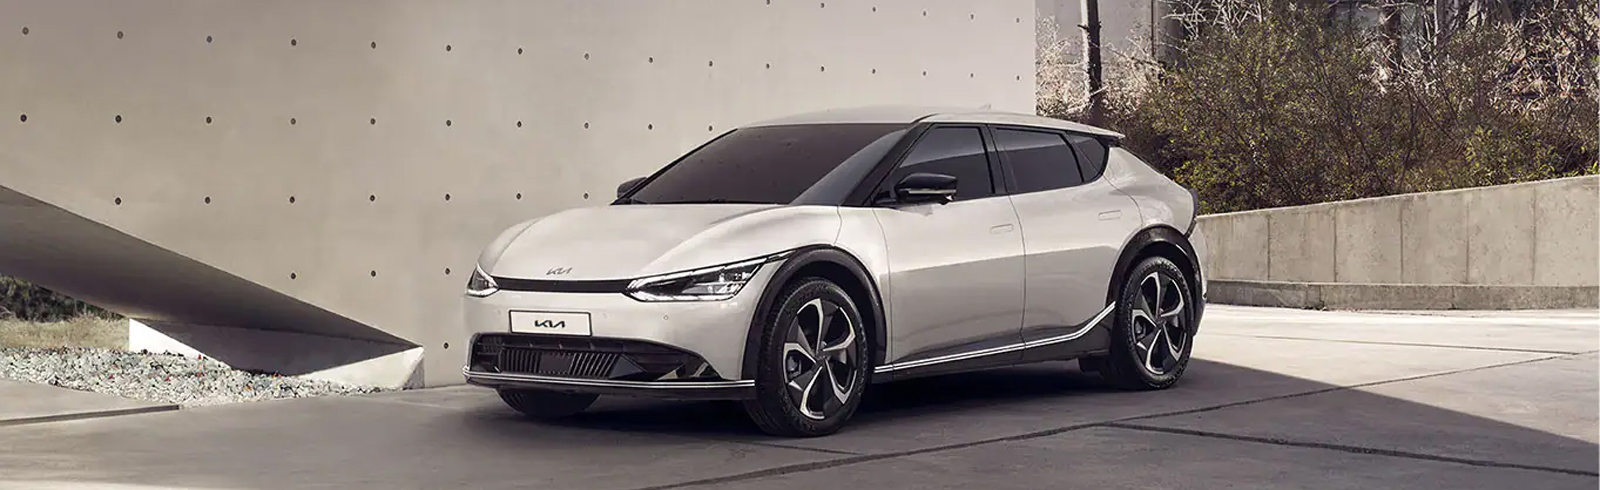 2022 Kia EV6 - detailed specifications and features according to the trim level